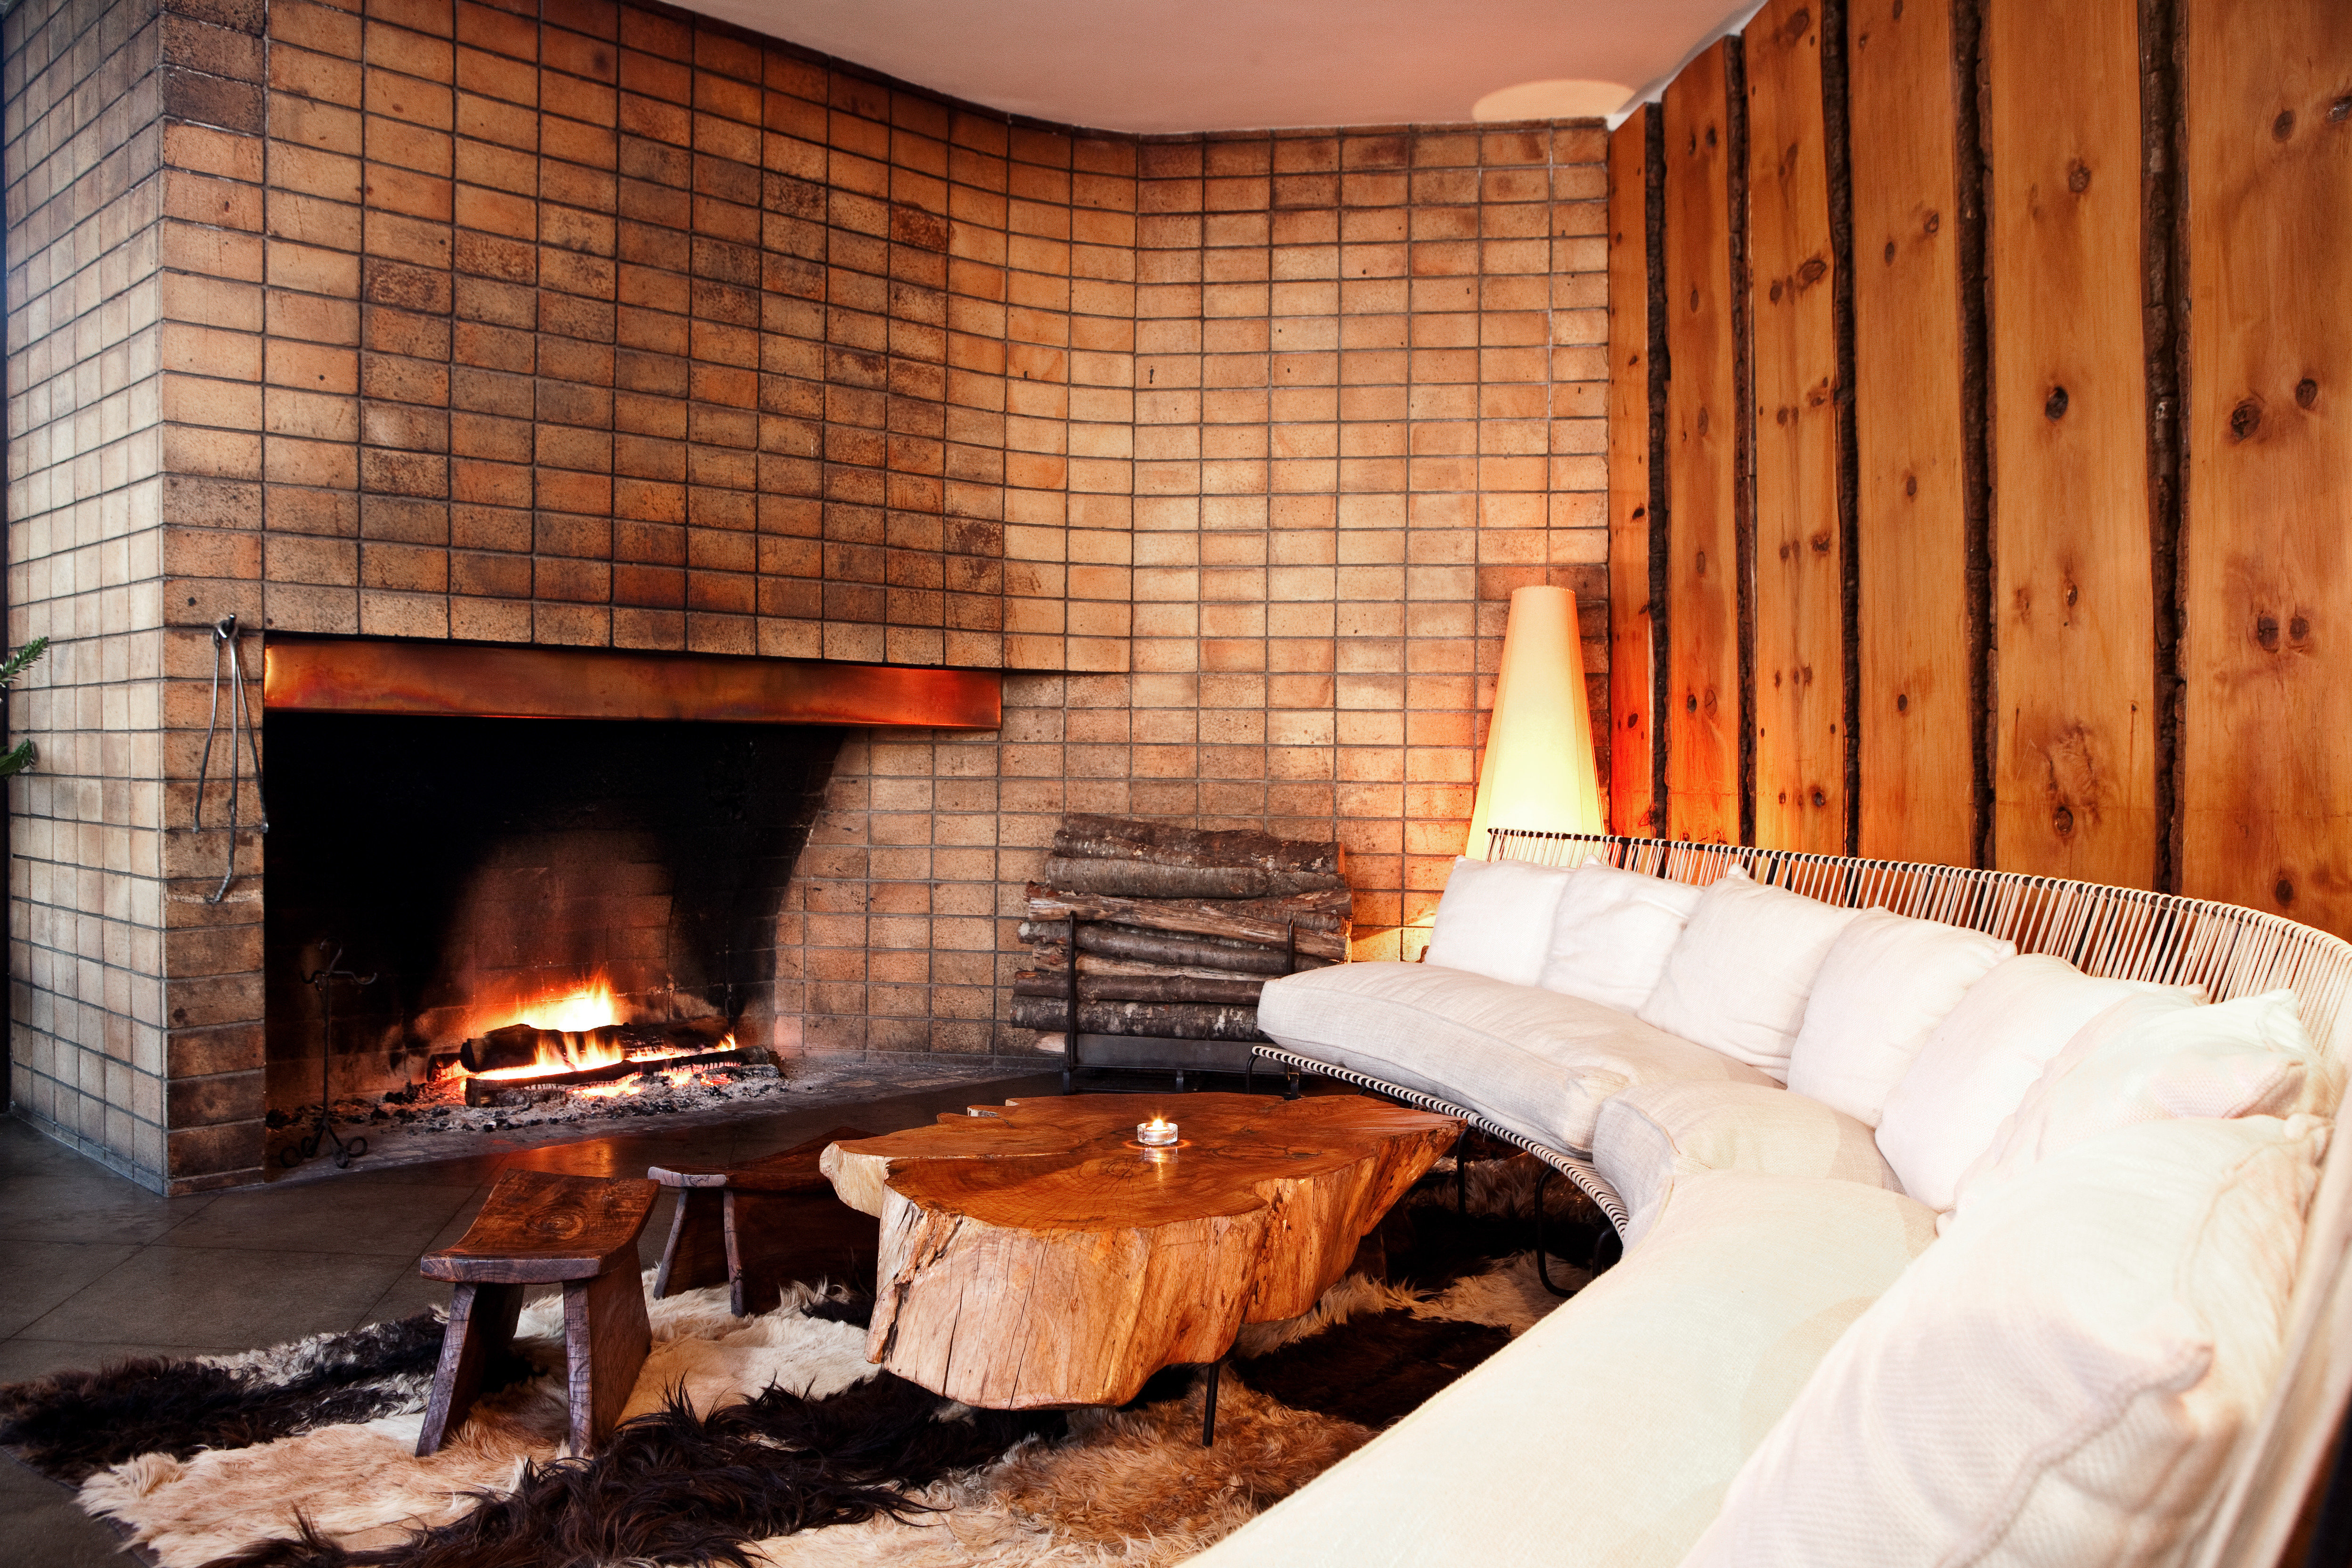 Fireplace Luxury Modern Resort Scenic views building fire hearth stone brick Nature cottage grill